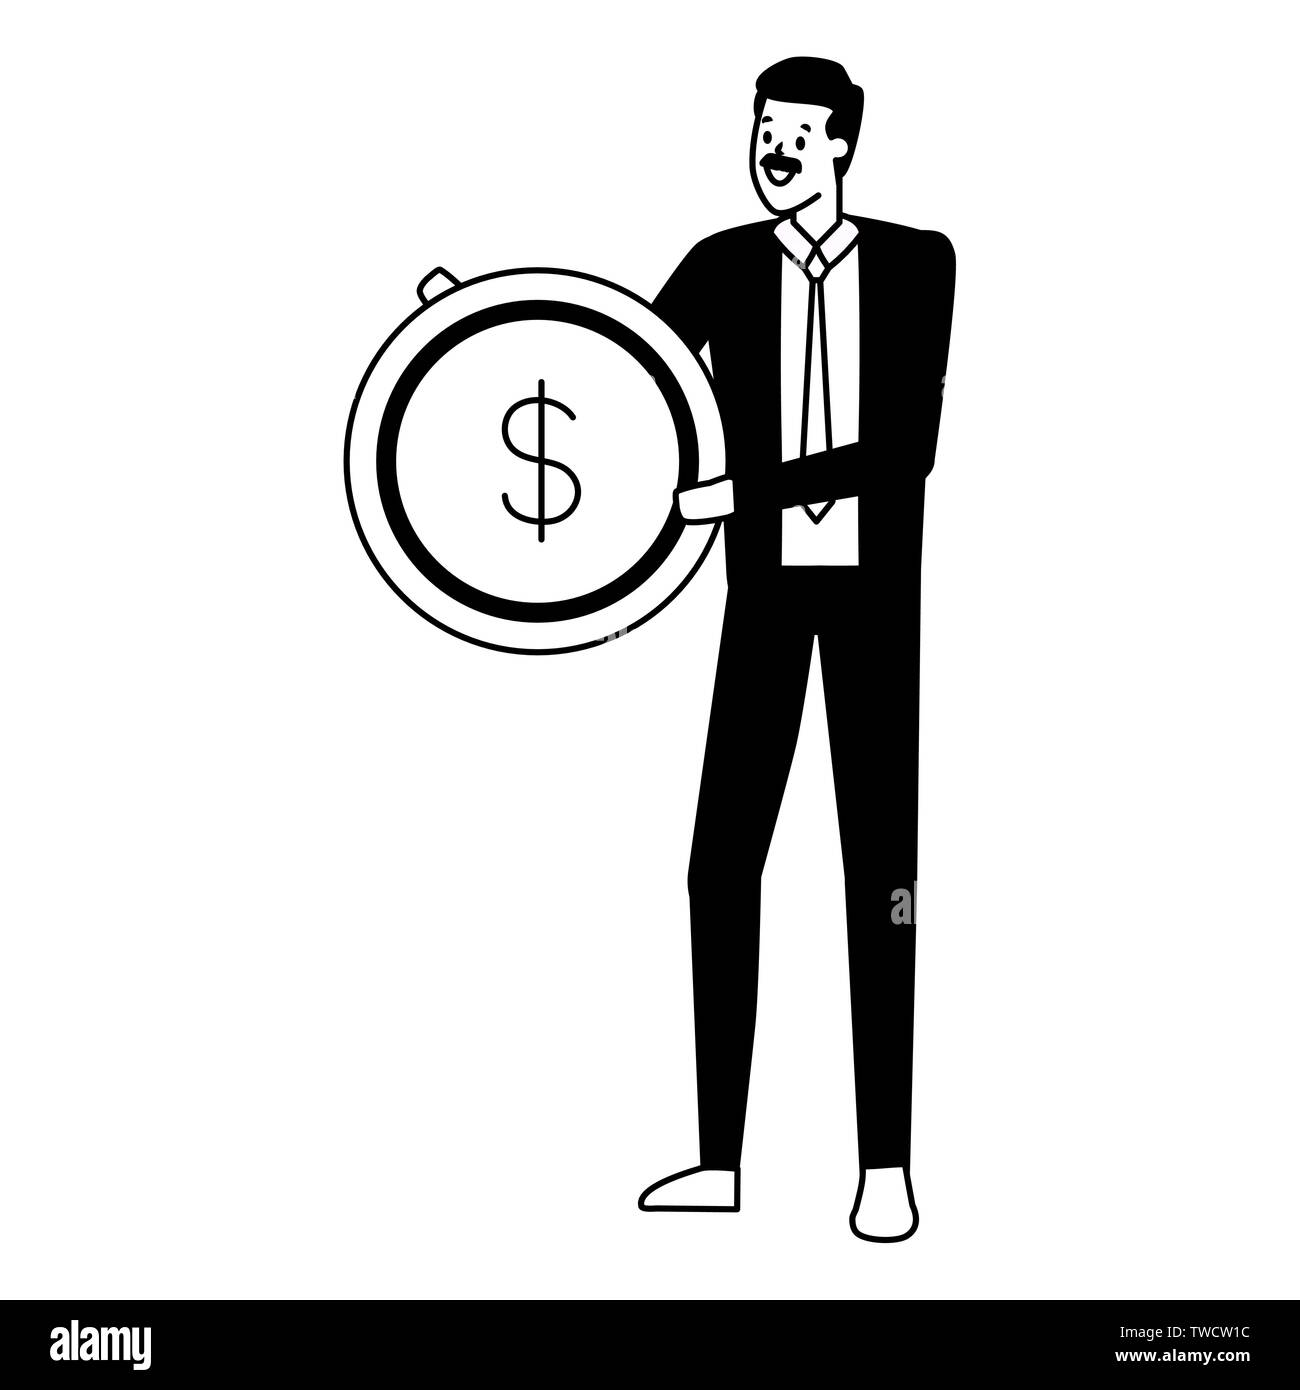 businessman holding coin money dollar vector illustration - Stock Image